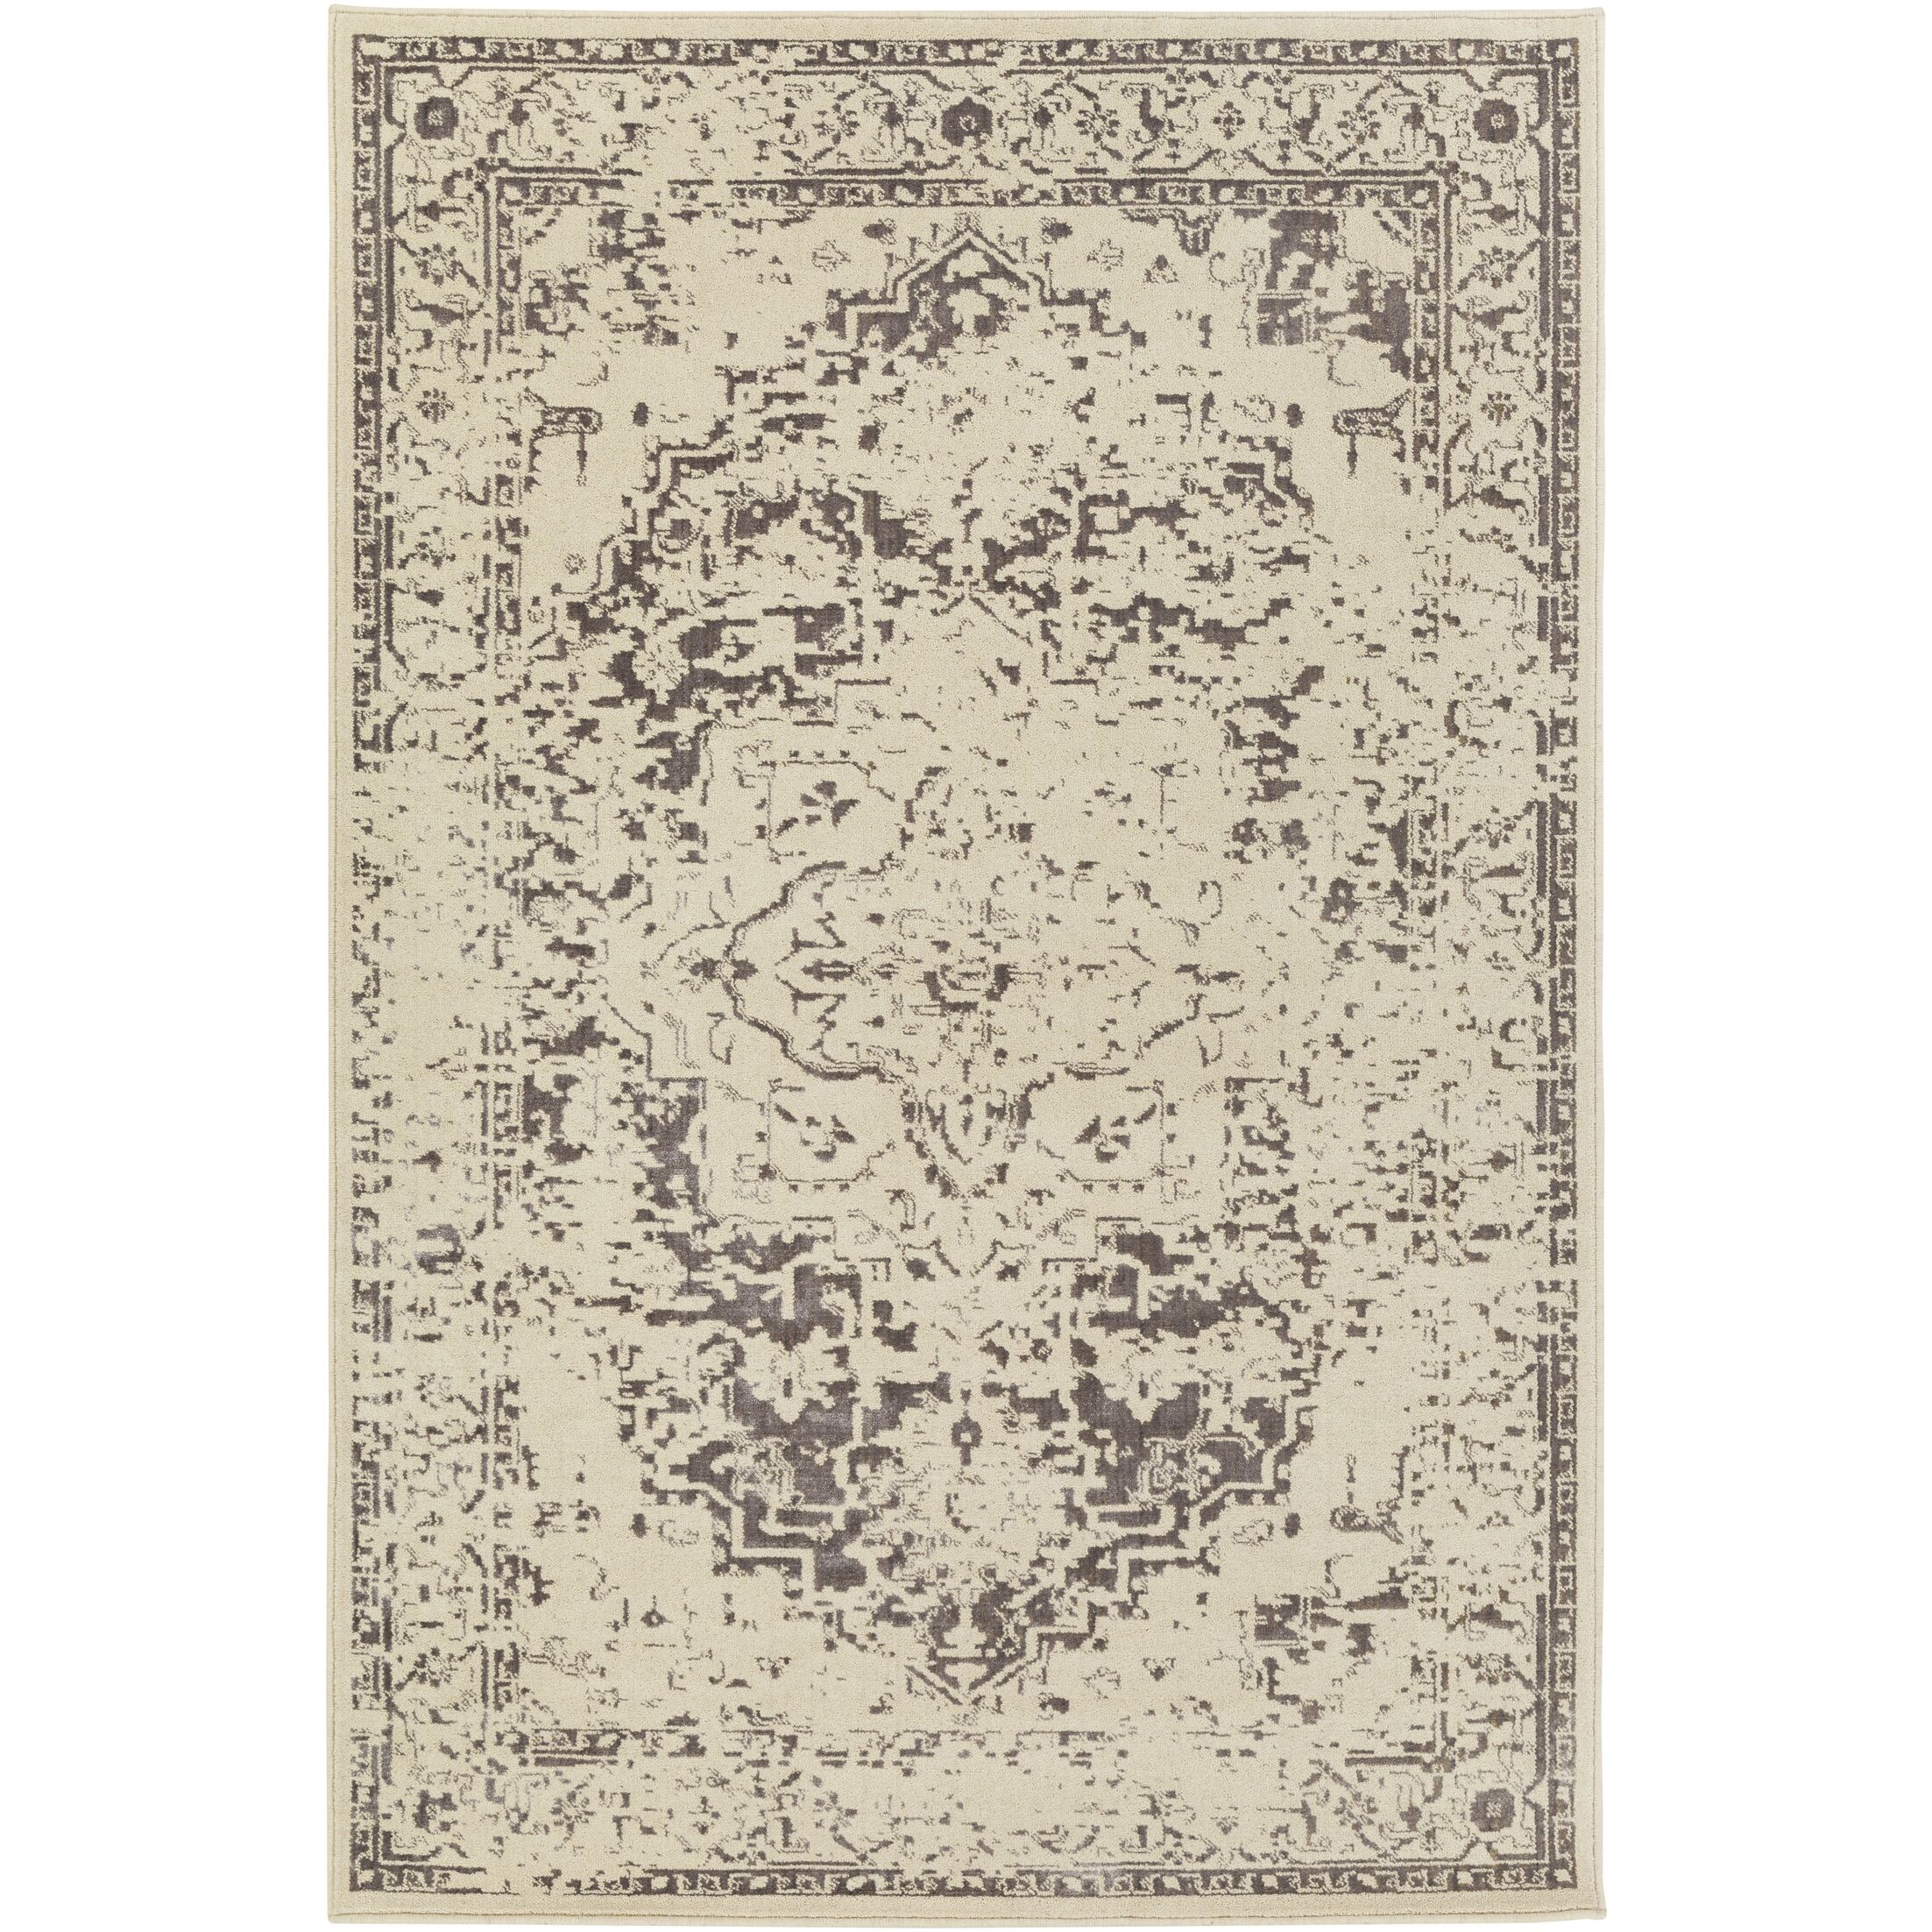 Puran Brown/Cream Area Rug Rug Size: Rectangle 7'10